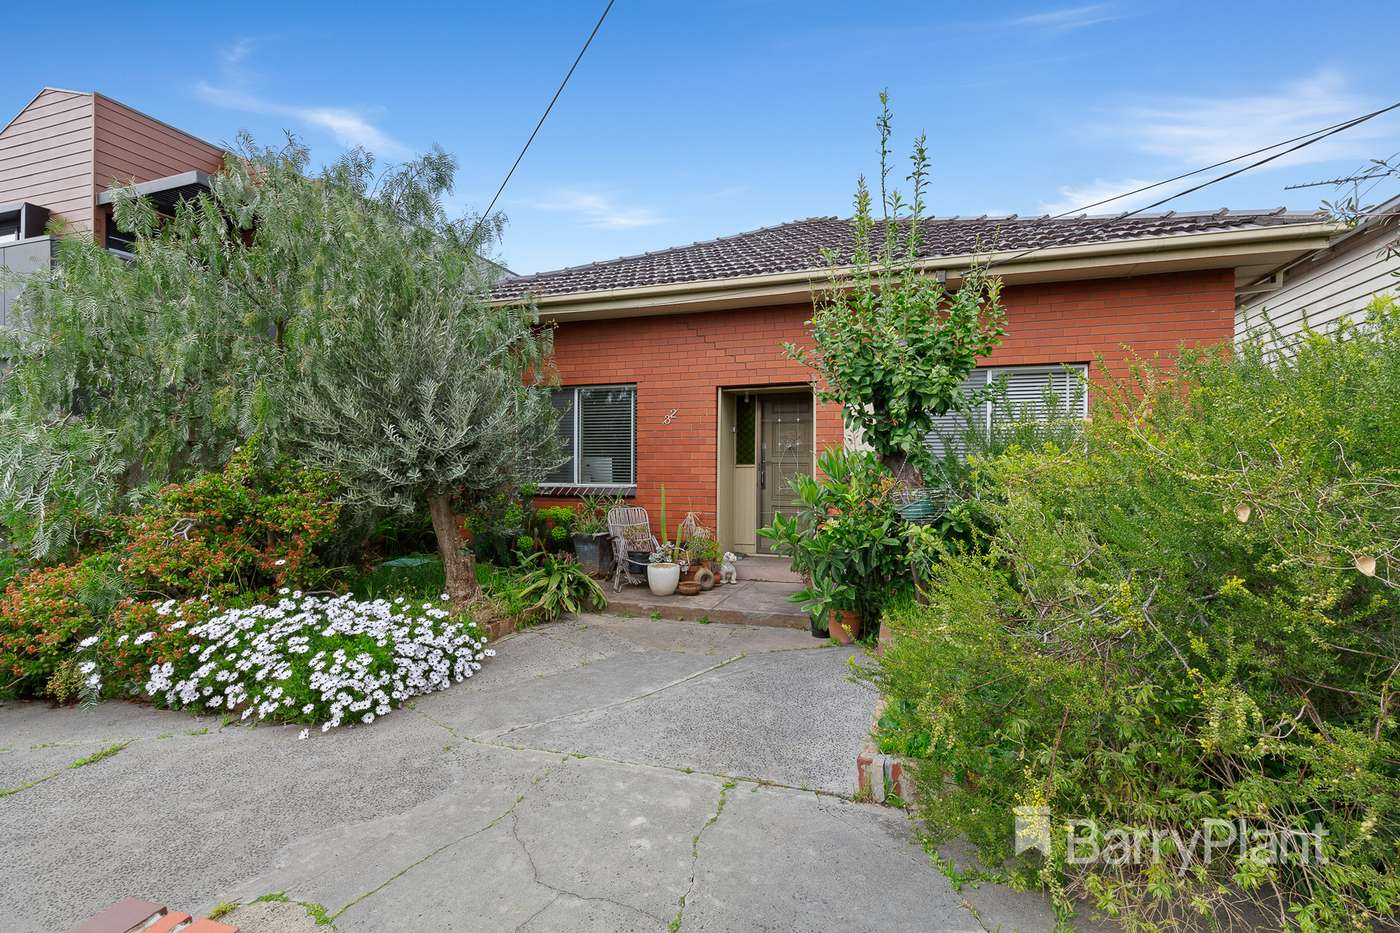 Main view of Homely house listing, 32 Sargood Street, Coburg, VIC 3058